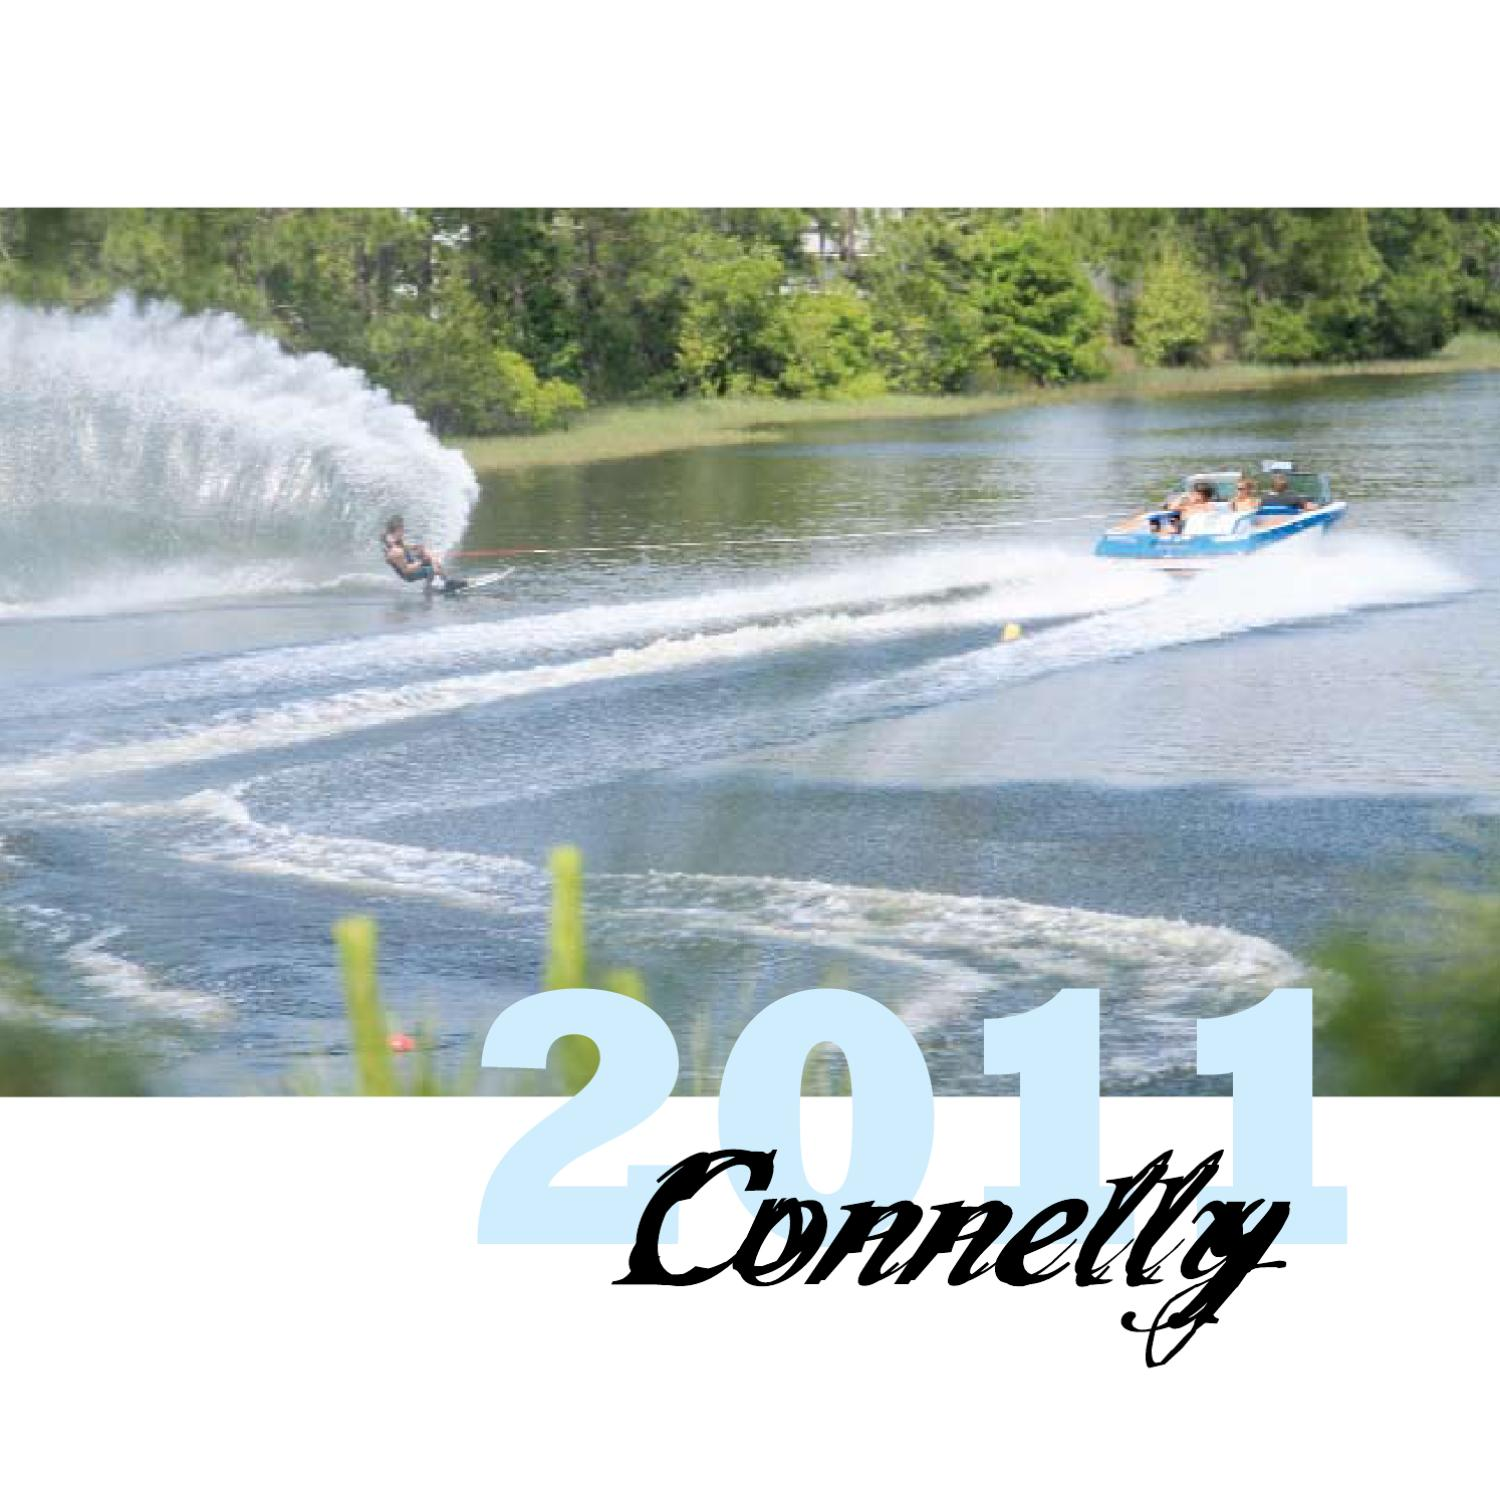 Connelly 2011 Brochure by kevin zoodsma - issuu